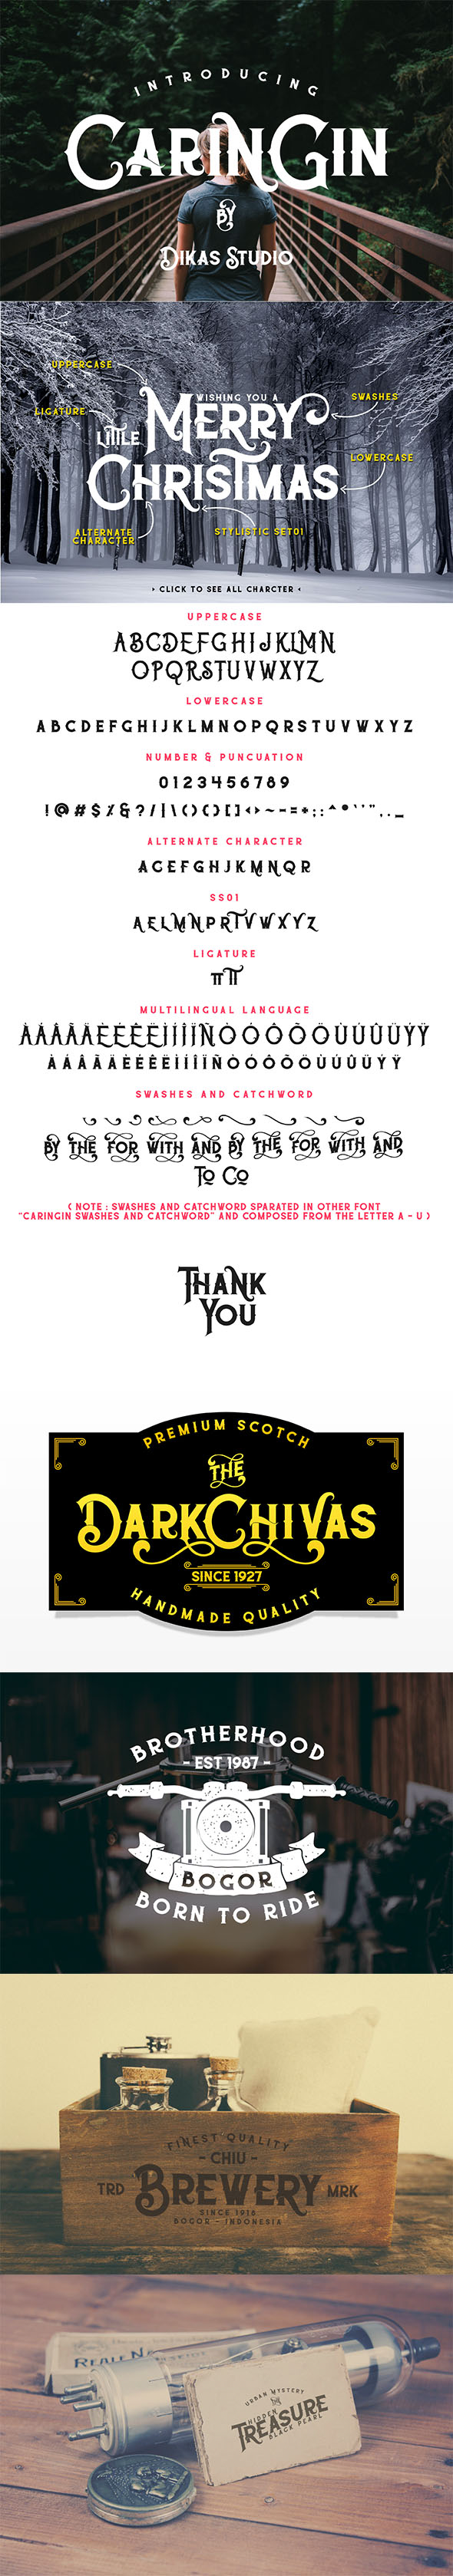 Caringin Typeface - Gothic Decorative